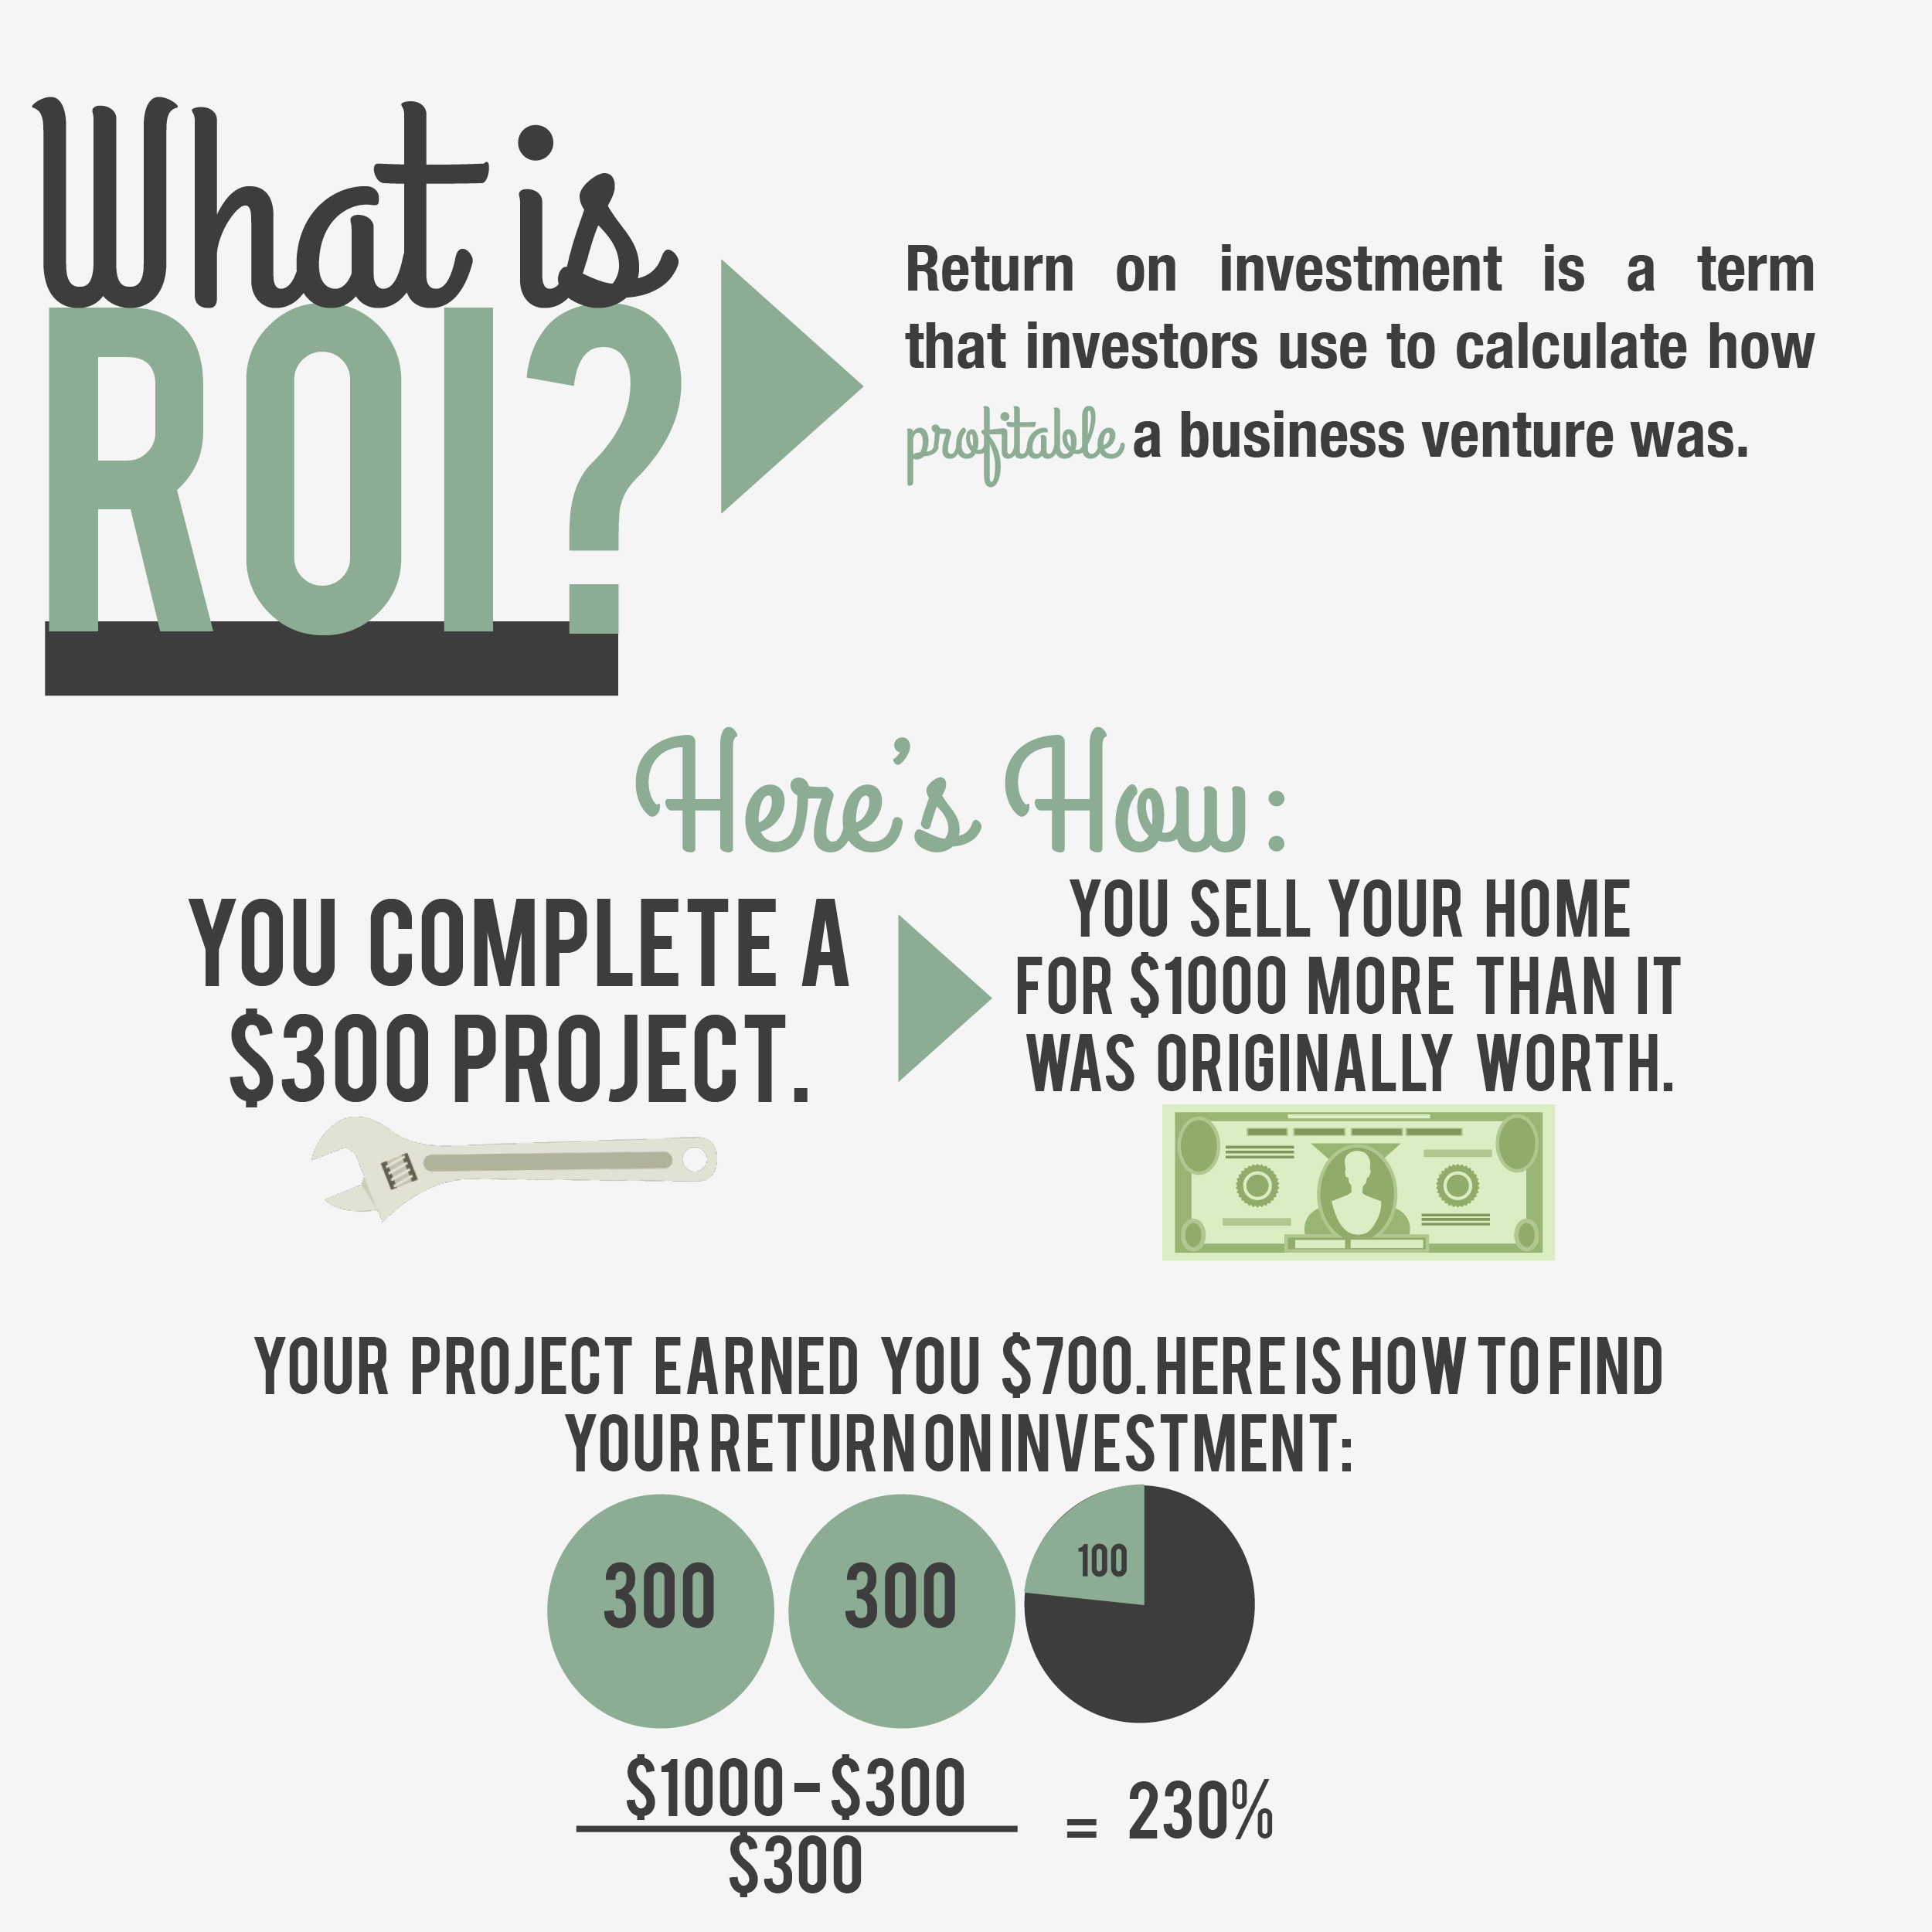 Home Improvement Roi: Home Improvements With The Highest ROI